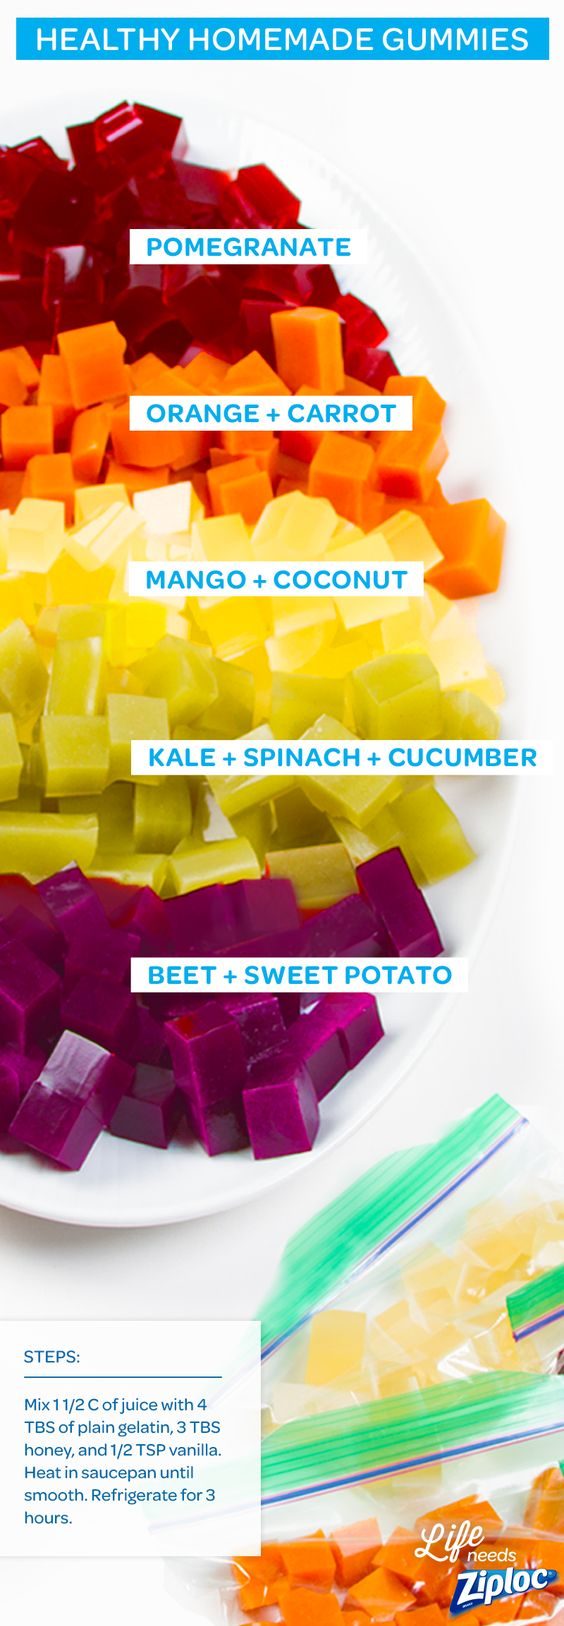 These DIY fruit and veggie gummies are so much healthier than what you'll find in a store. Plus, you can make them in bulk for easy lunch or after-work snacks. Just mix 1 ½ cups of fruit or veggie juice with 4 tablespoons of plain gelatin in a saucepan. Whisk it smooth, then stir in 3 tablespoons of honey and ½ teaspoon of vanilla (you can lighten the color by adding a little bit of coconut milk). Chill in a Ziploc® container in the fridge for 2-3 hours, then cube!